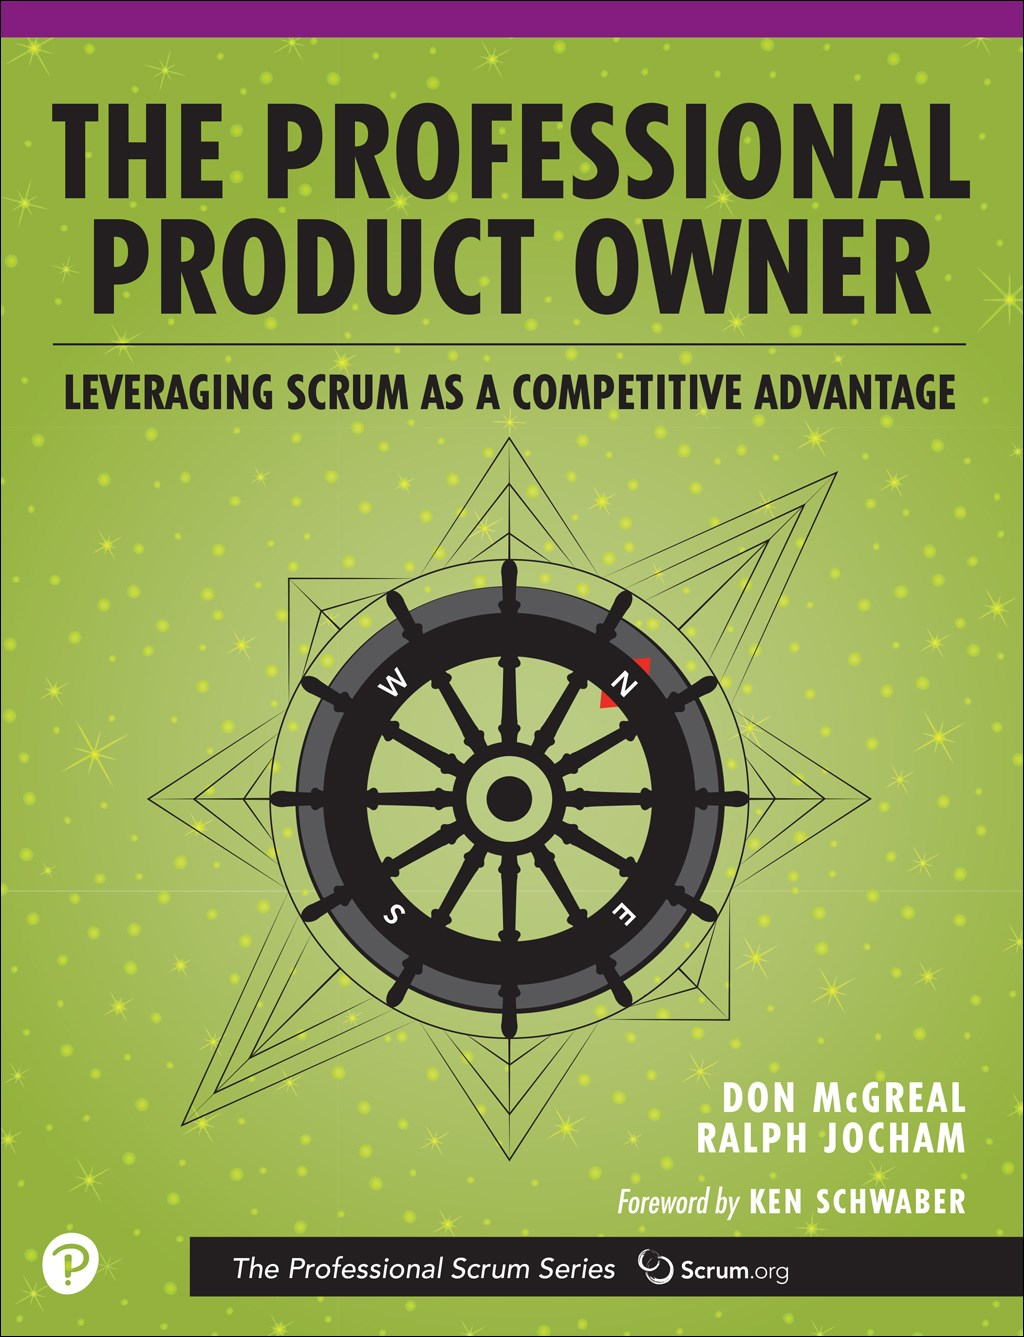 Professional Product Owner, The: Leveraging Scrum as a Competitive Advantage